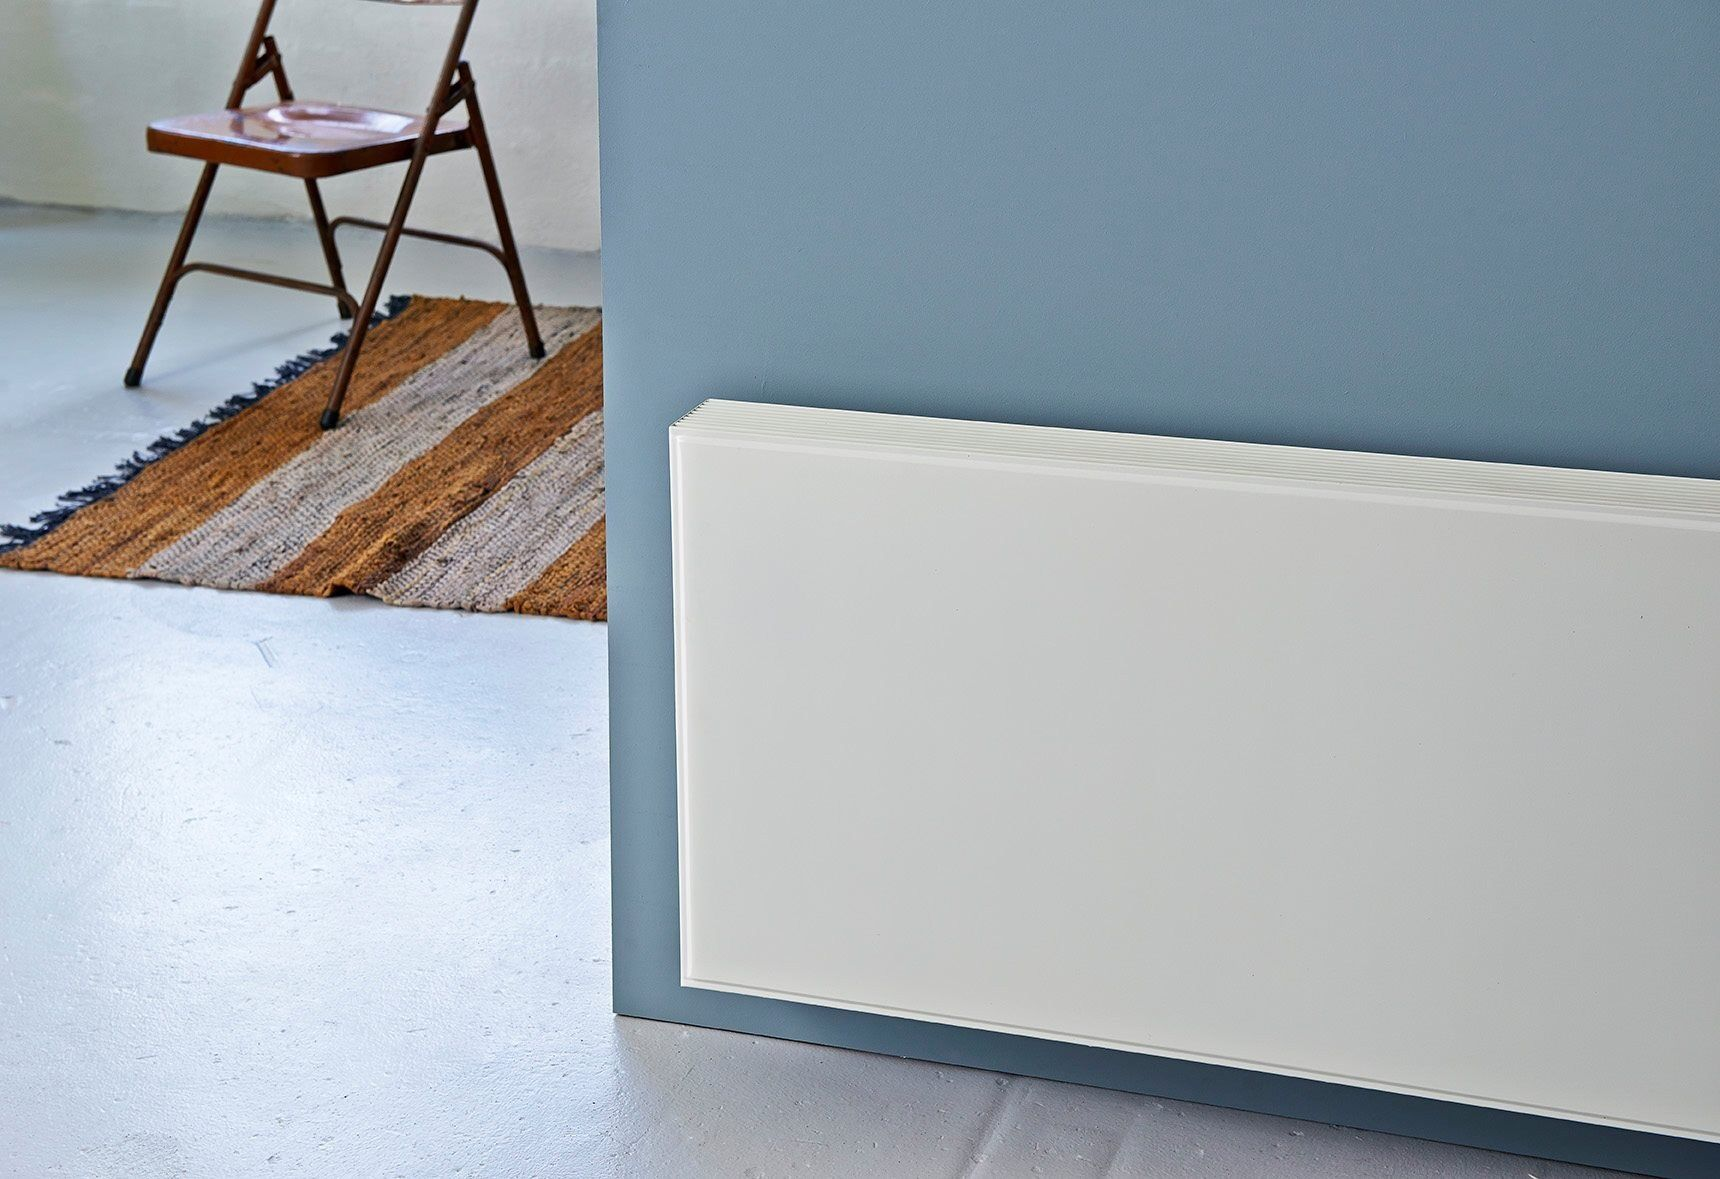 Hudevad Fionia flat panel radiator, direct from Simply Radiators ...